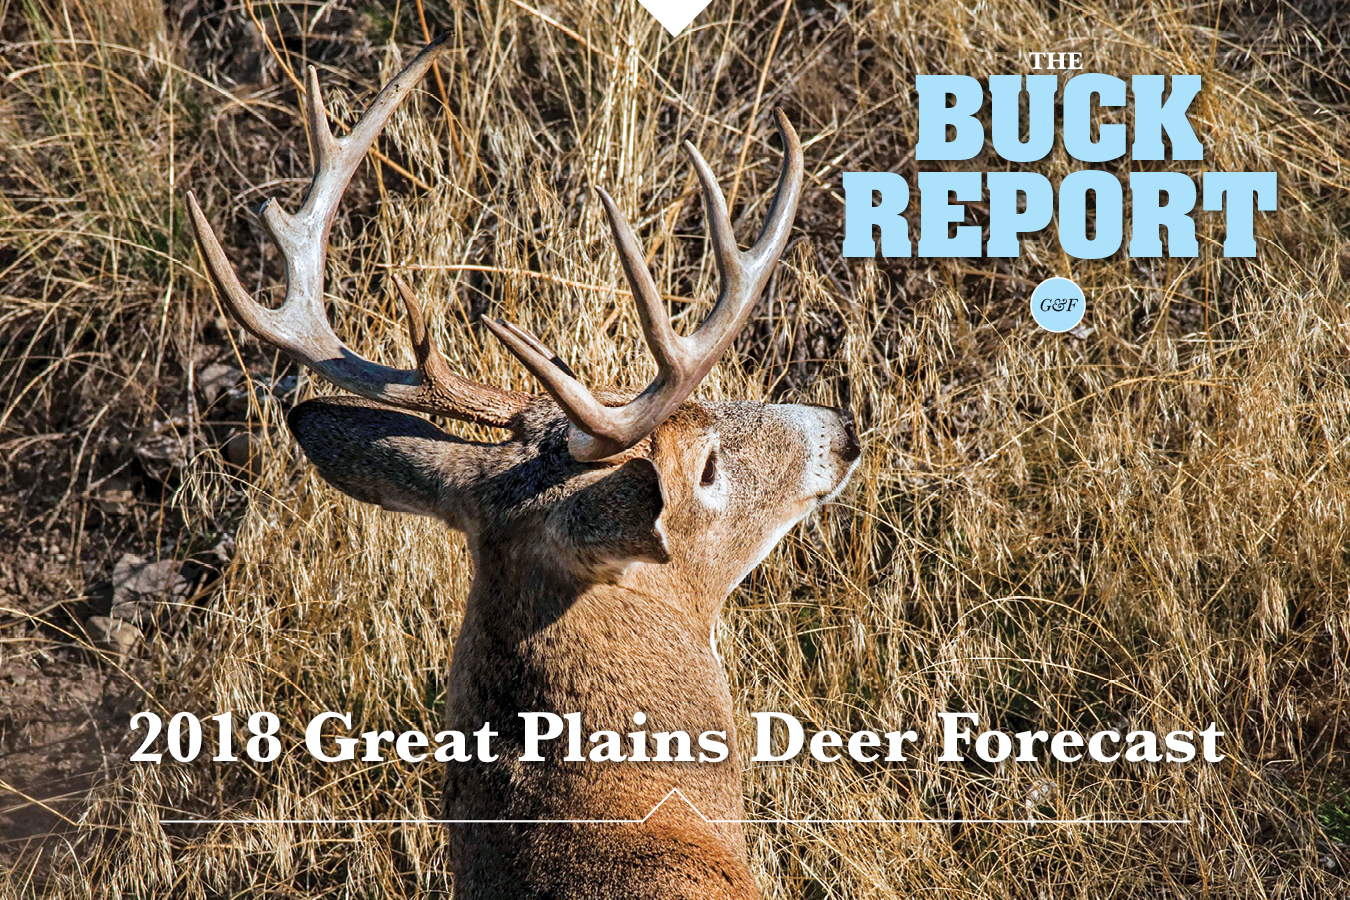 This detailed analysis of the Great Plains deer picture will give you a realistic view of your 2018 hunting prospects.